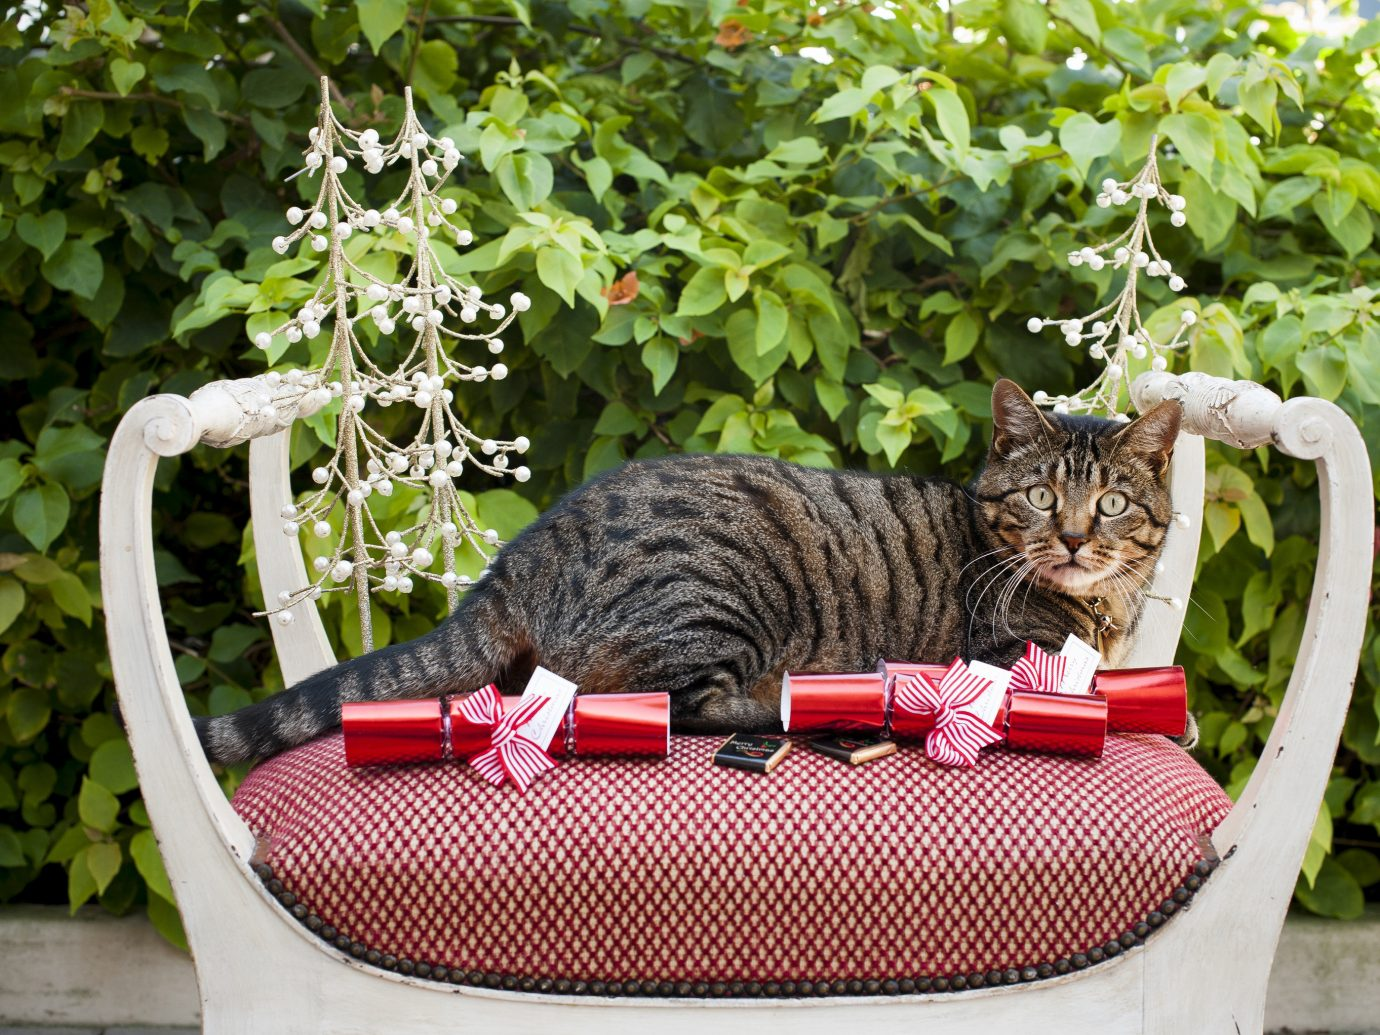 Hotels cat basket outdoor container mammal red plant laying kitten cat like mammal flower small to medium sized cats Garden